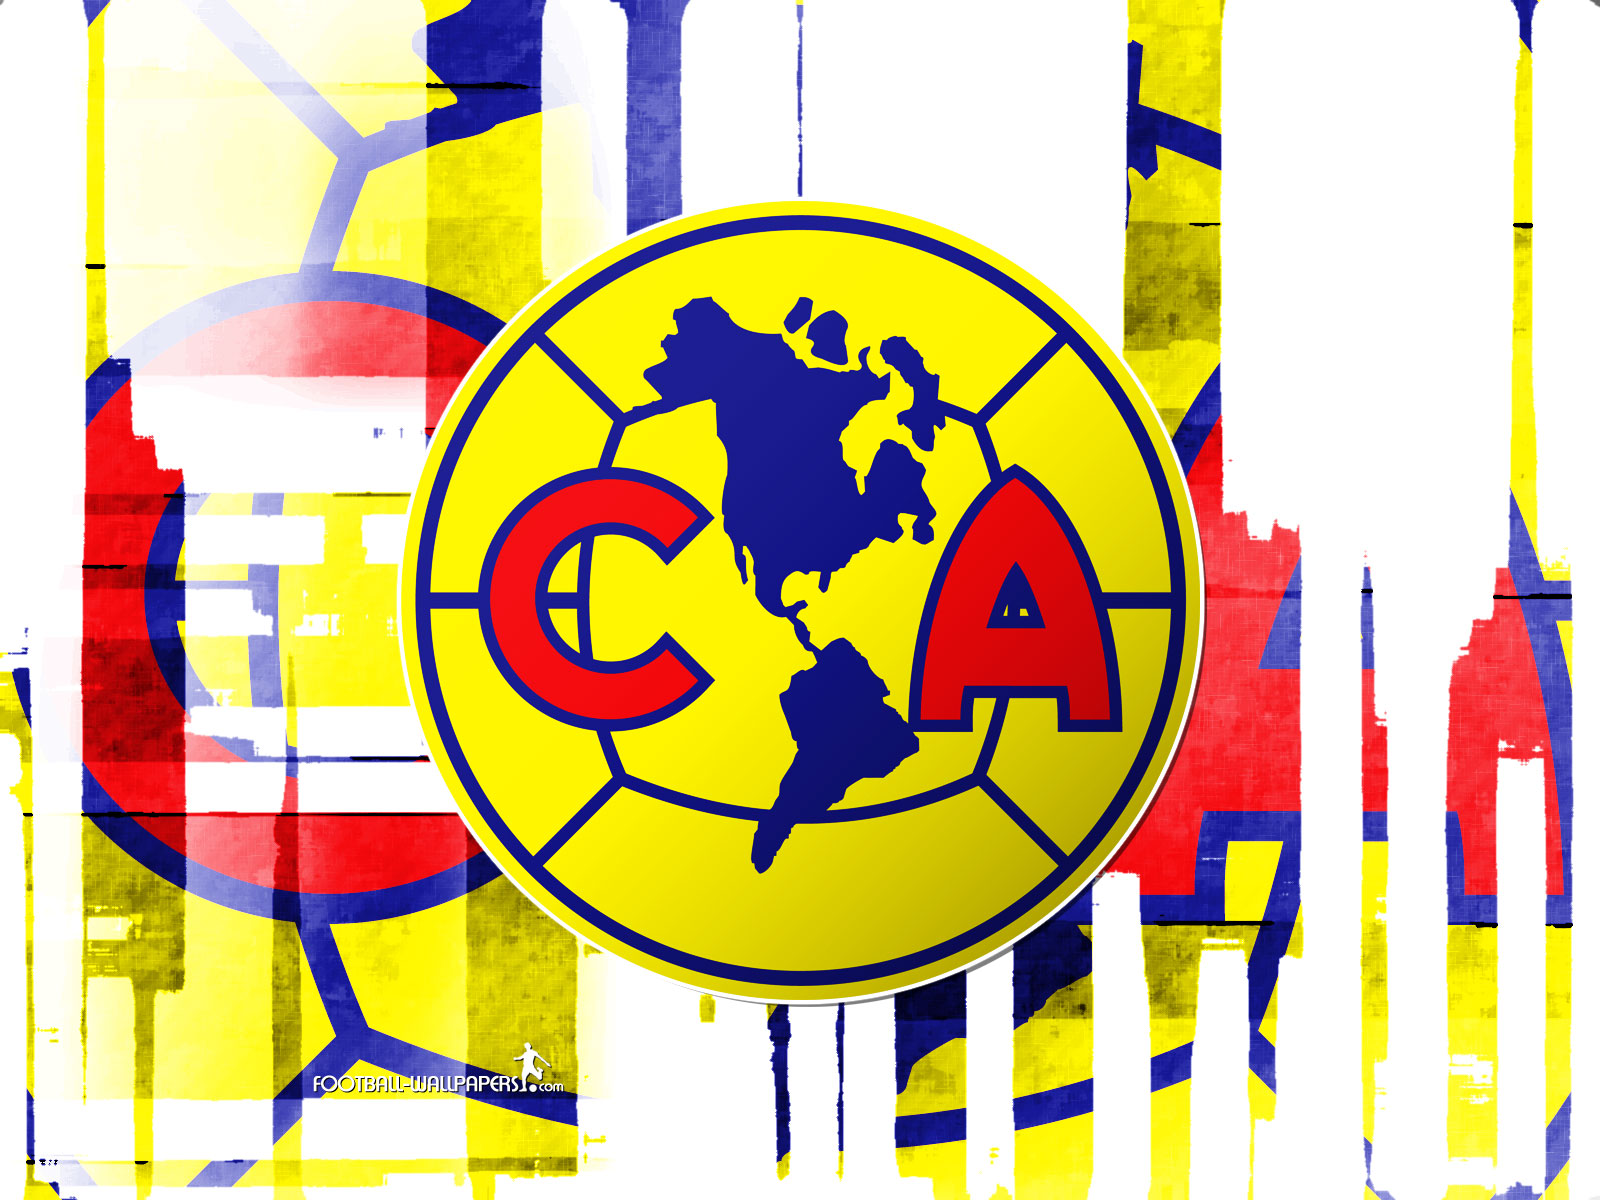 Club America Wallpaper 1 Football Wallpapers and Videos 1600x1200